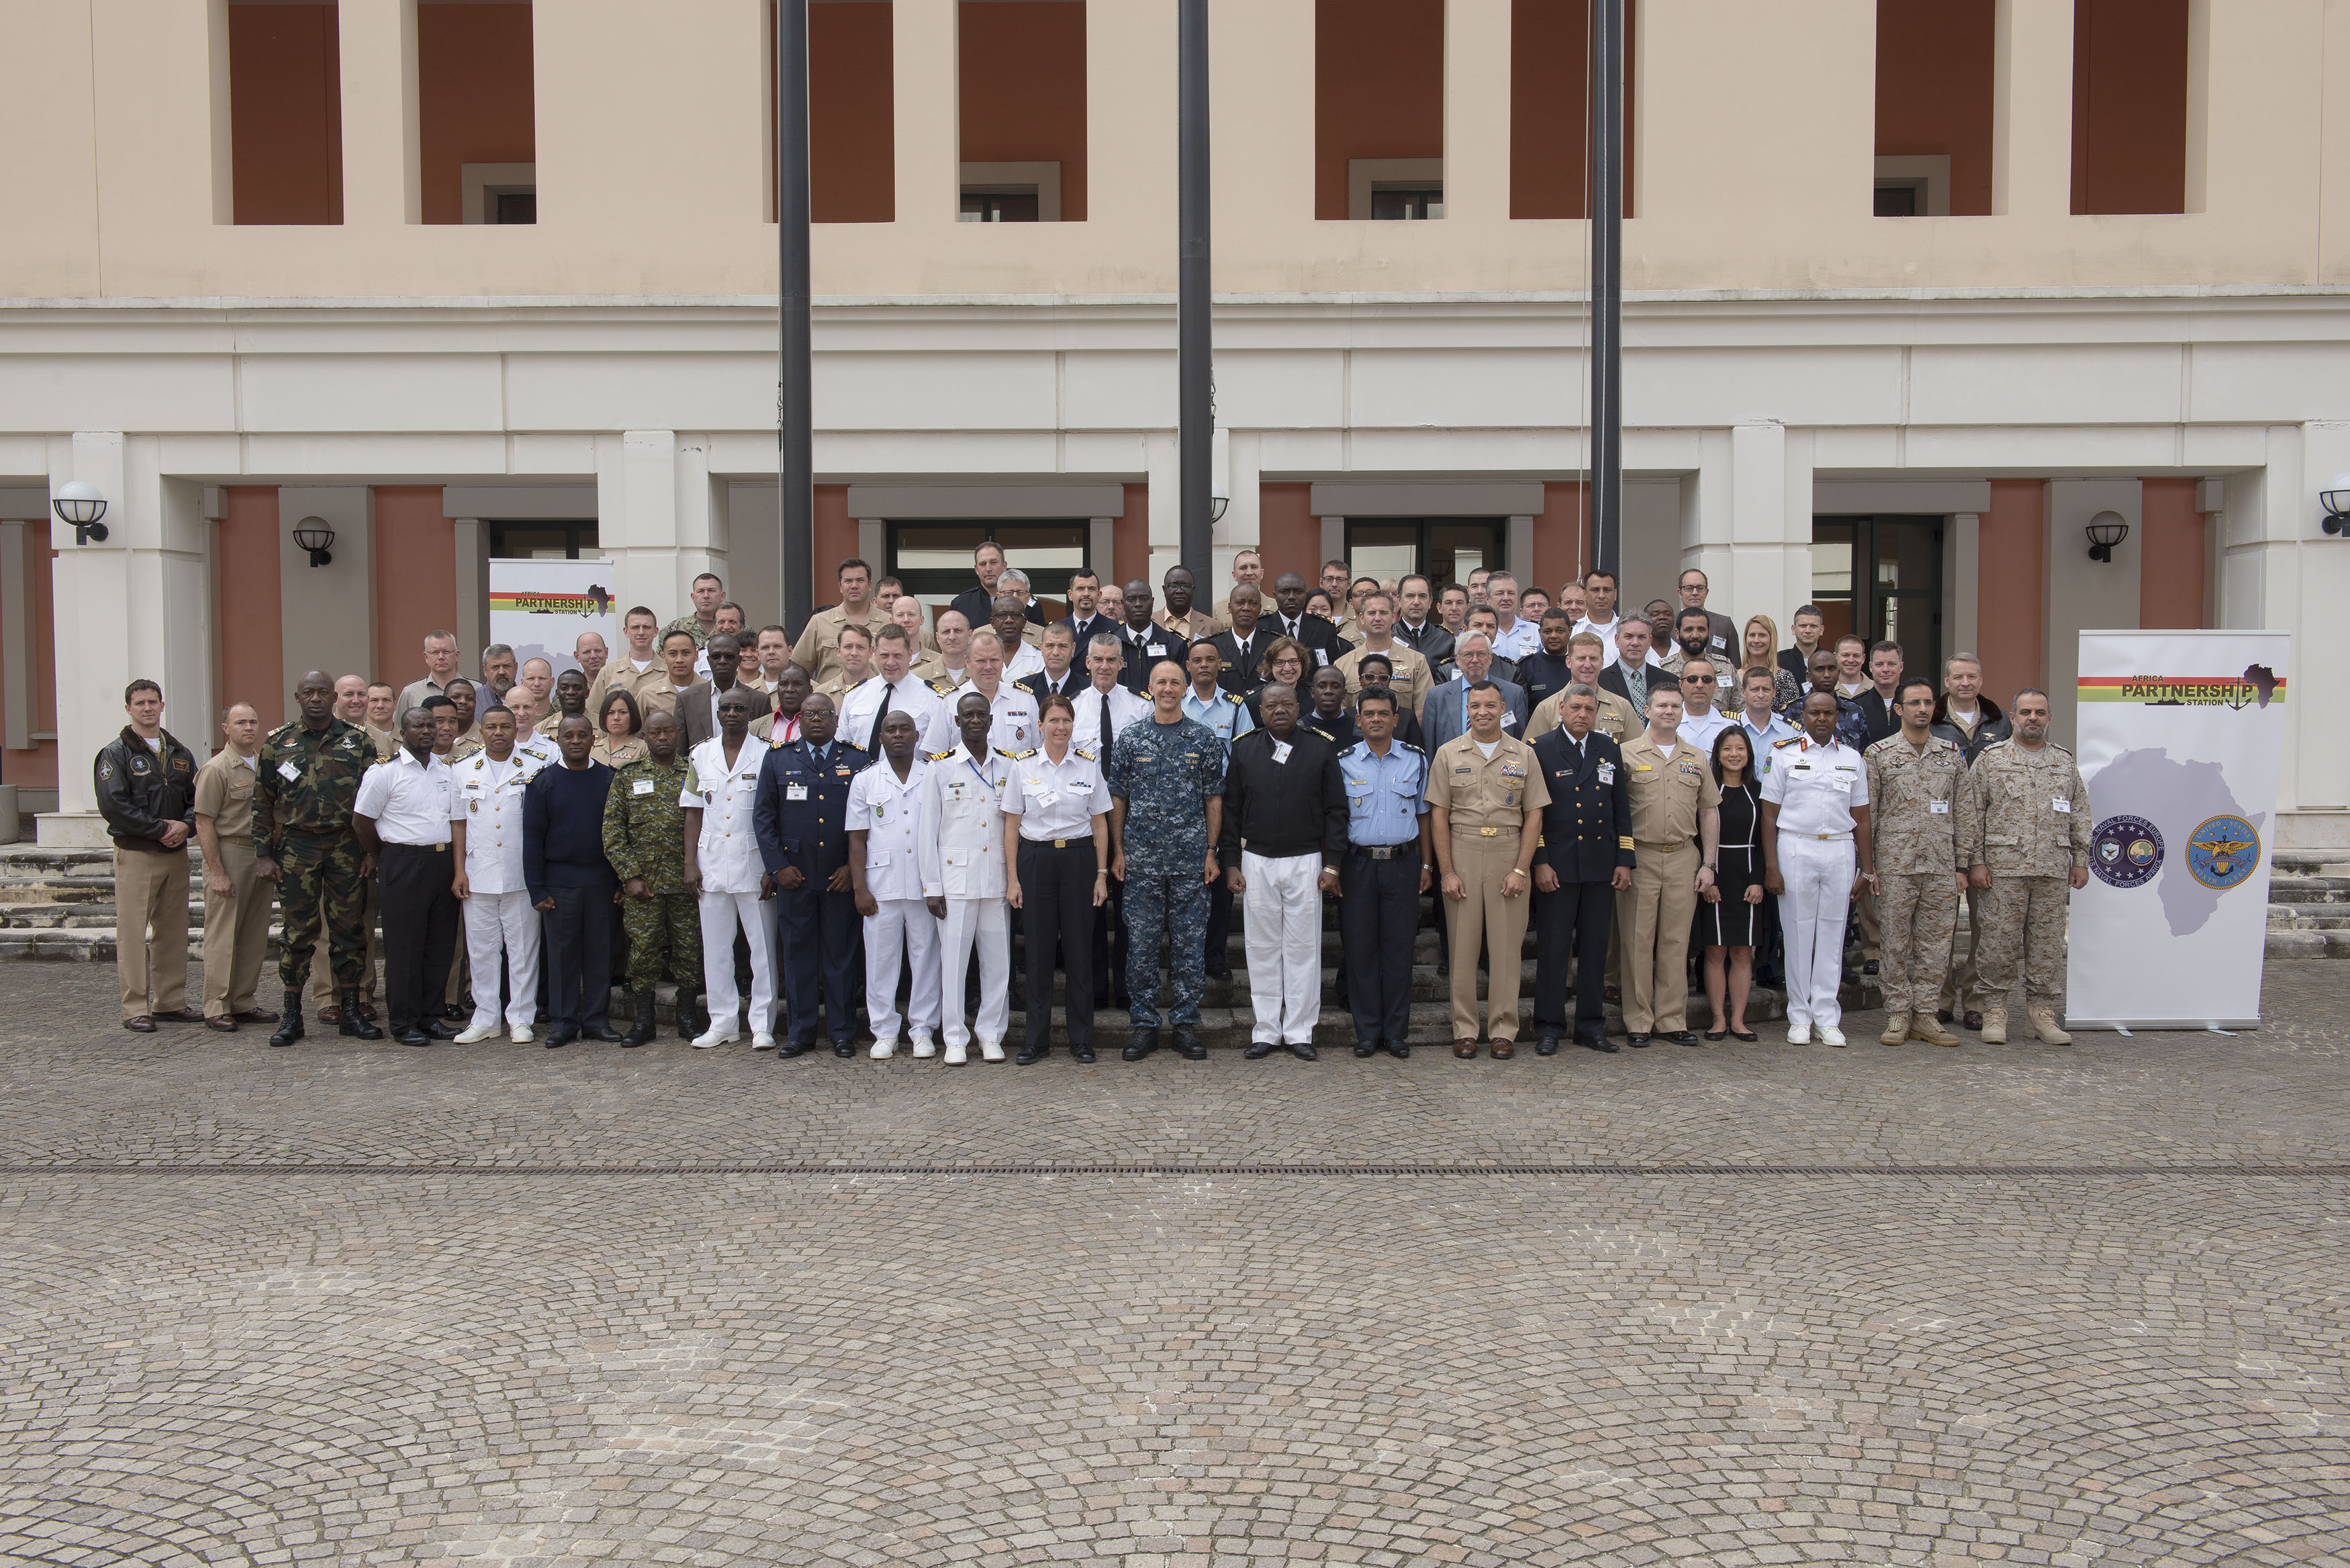 160503-N-OX801-094 NAVAL SUPPORT ACTIVITY NAPLES, Italy (May 3, 2016) U.S. Naval Forces Europe-Africa Chief of Staff, Rear Adm. Cathal O'Connor, center, and attendees of the Africa Partnership Station 2017 planning conference pose for a photo in Naval Support Activity Naples, Italy, May 3, 2016. U.S. 6th Fleet, headquartered in Naples, Italy, conducts the full spectrum of joint and naval operations, often in concert with allied, joint, and interagency partner, in order to advance U.S. national interests and security and stability in Europe and Africa. (U.S. Navy photo by Mass Communication Specialist 2nd Class Daniel Schumacher/ Released)